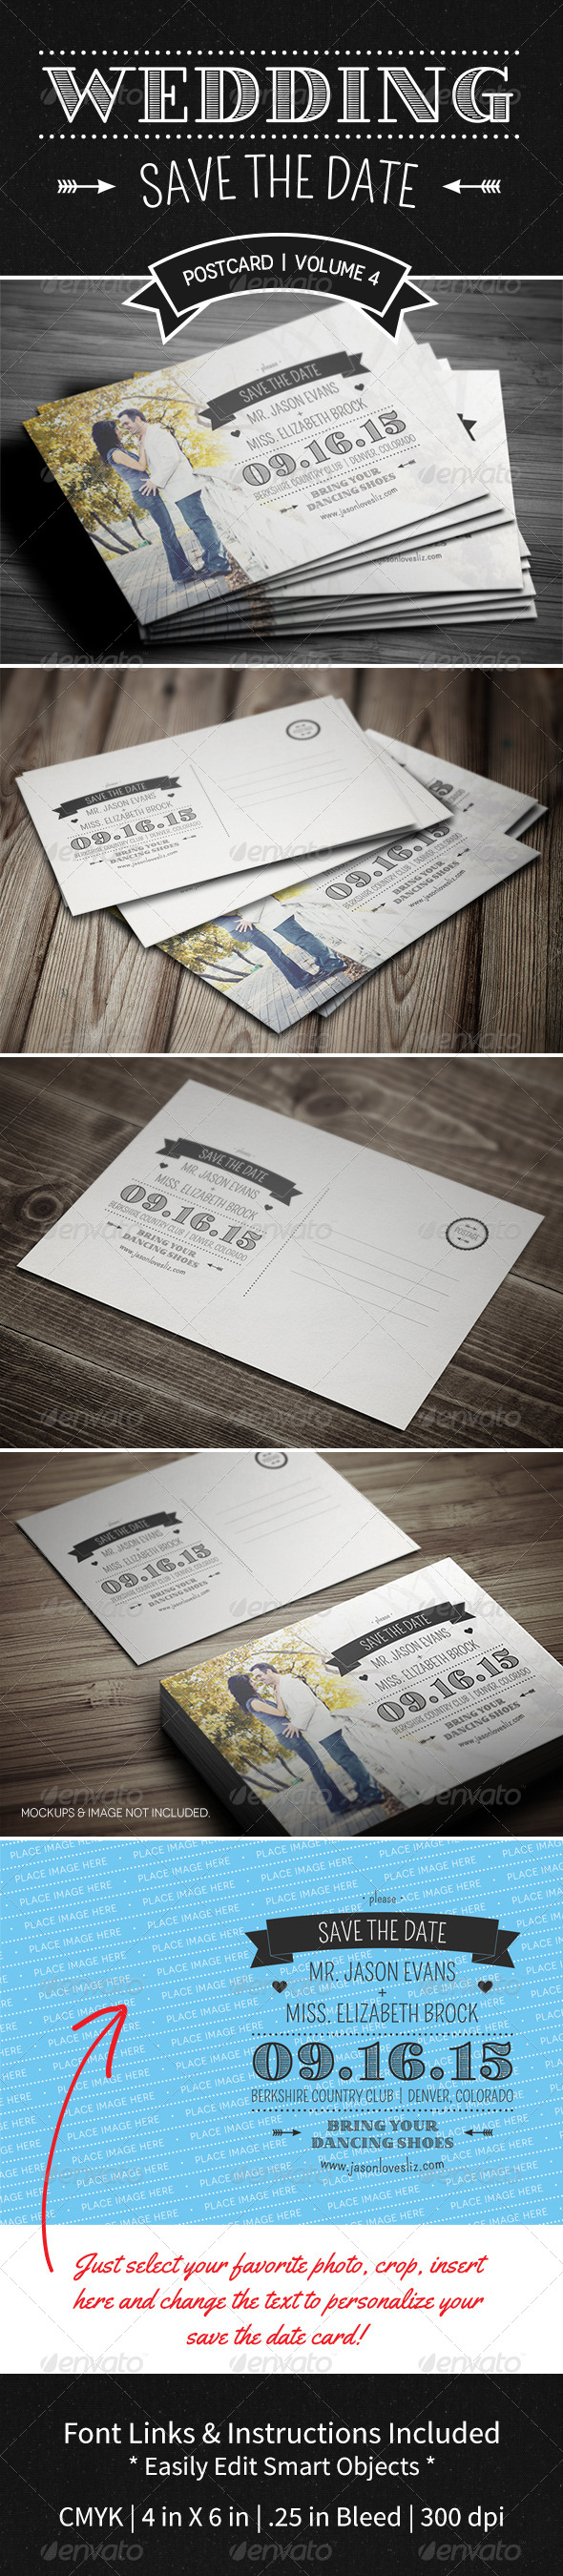 GraphicRiver Save The Date Postcard Volume 4 5267097